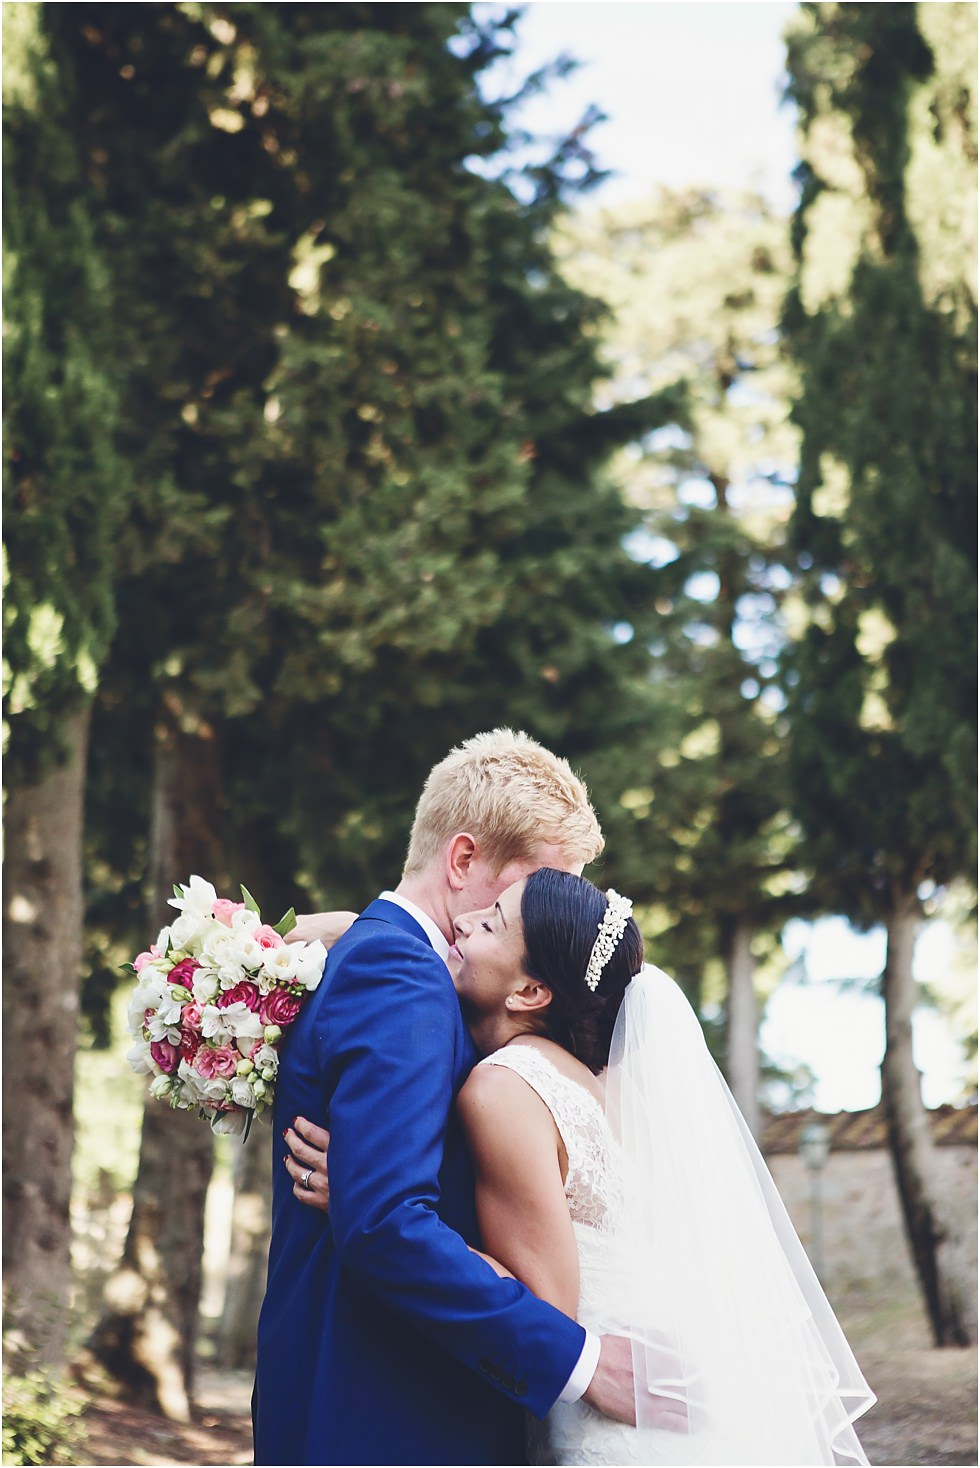 Cristina Rossi Photography Destination Wedding Italy_1295